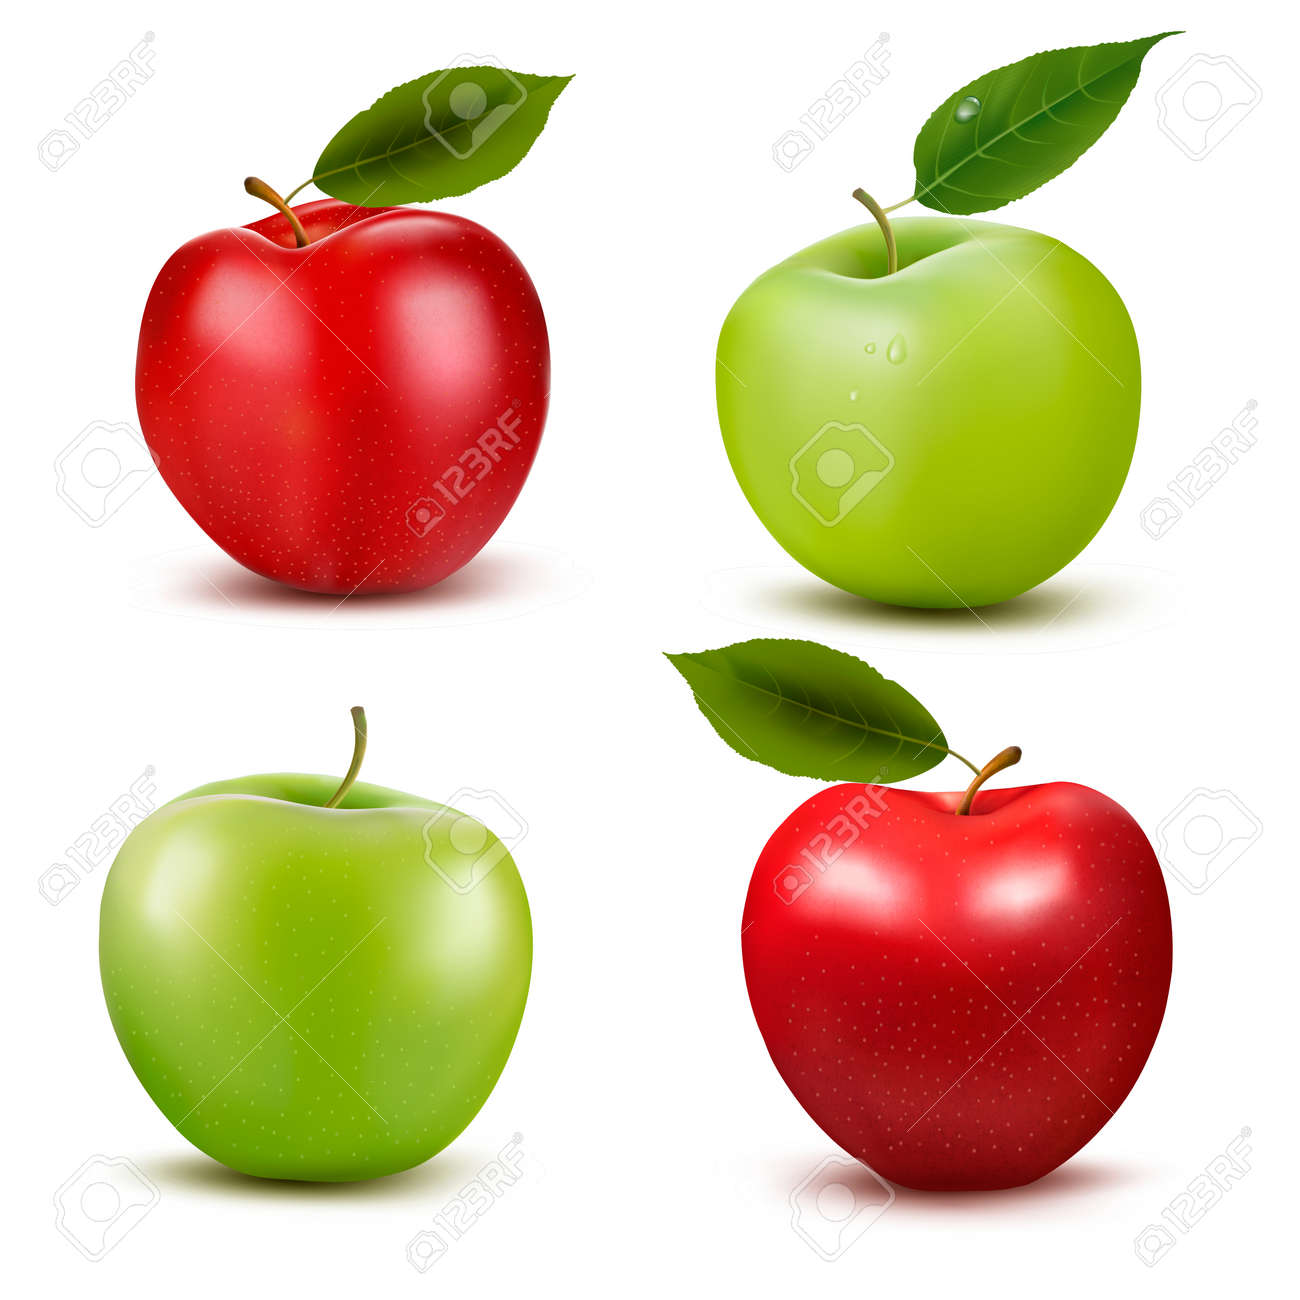 Set of red and green apple fruits with cut and green leaves. Vector illustration. Stock Vector - 22966557